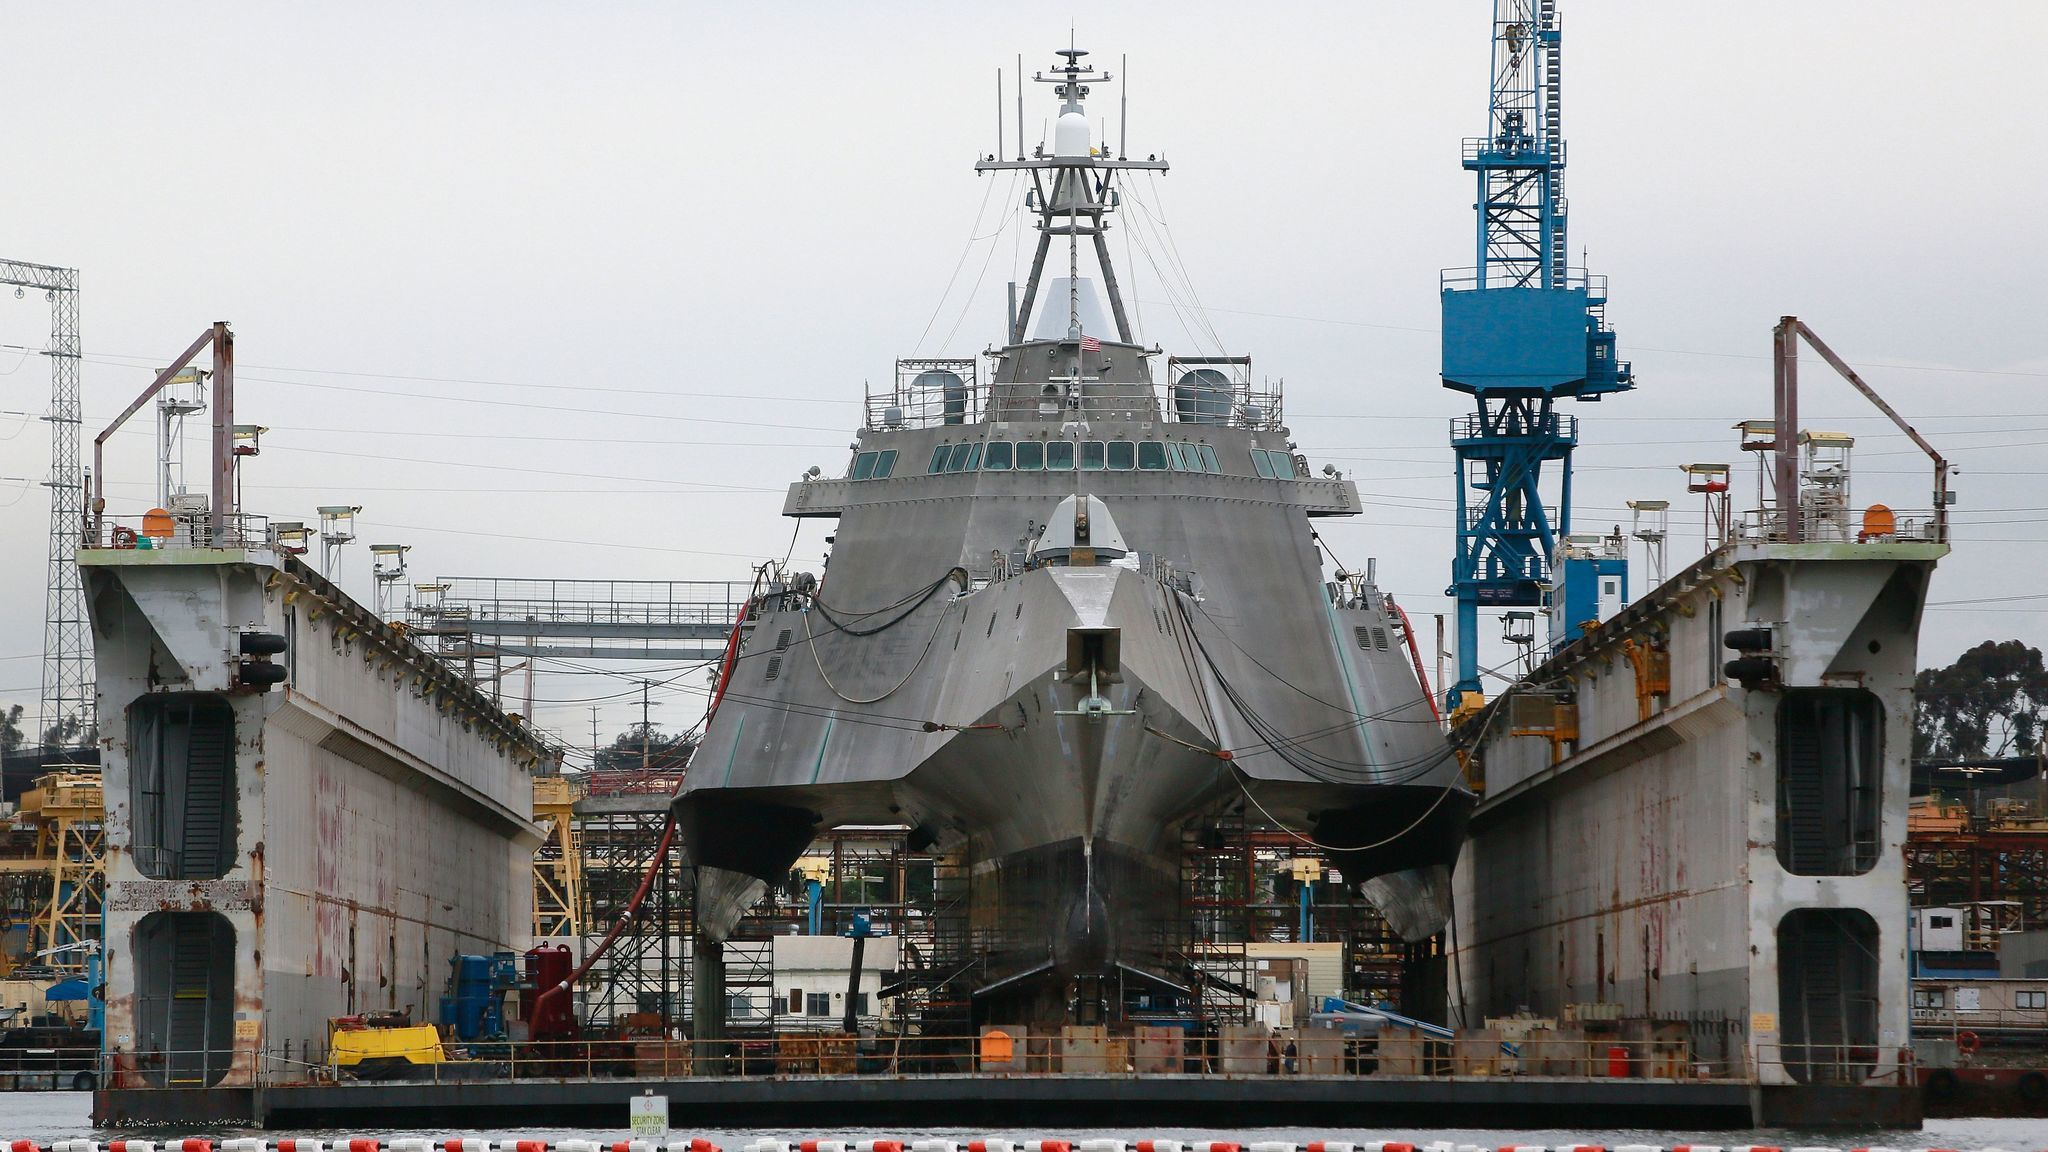 The littoral combat ship Independence is undergoing repairs and upgrades at General Dynamics-NASSCO in San Diego.